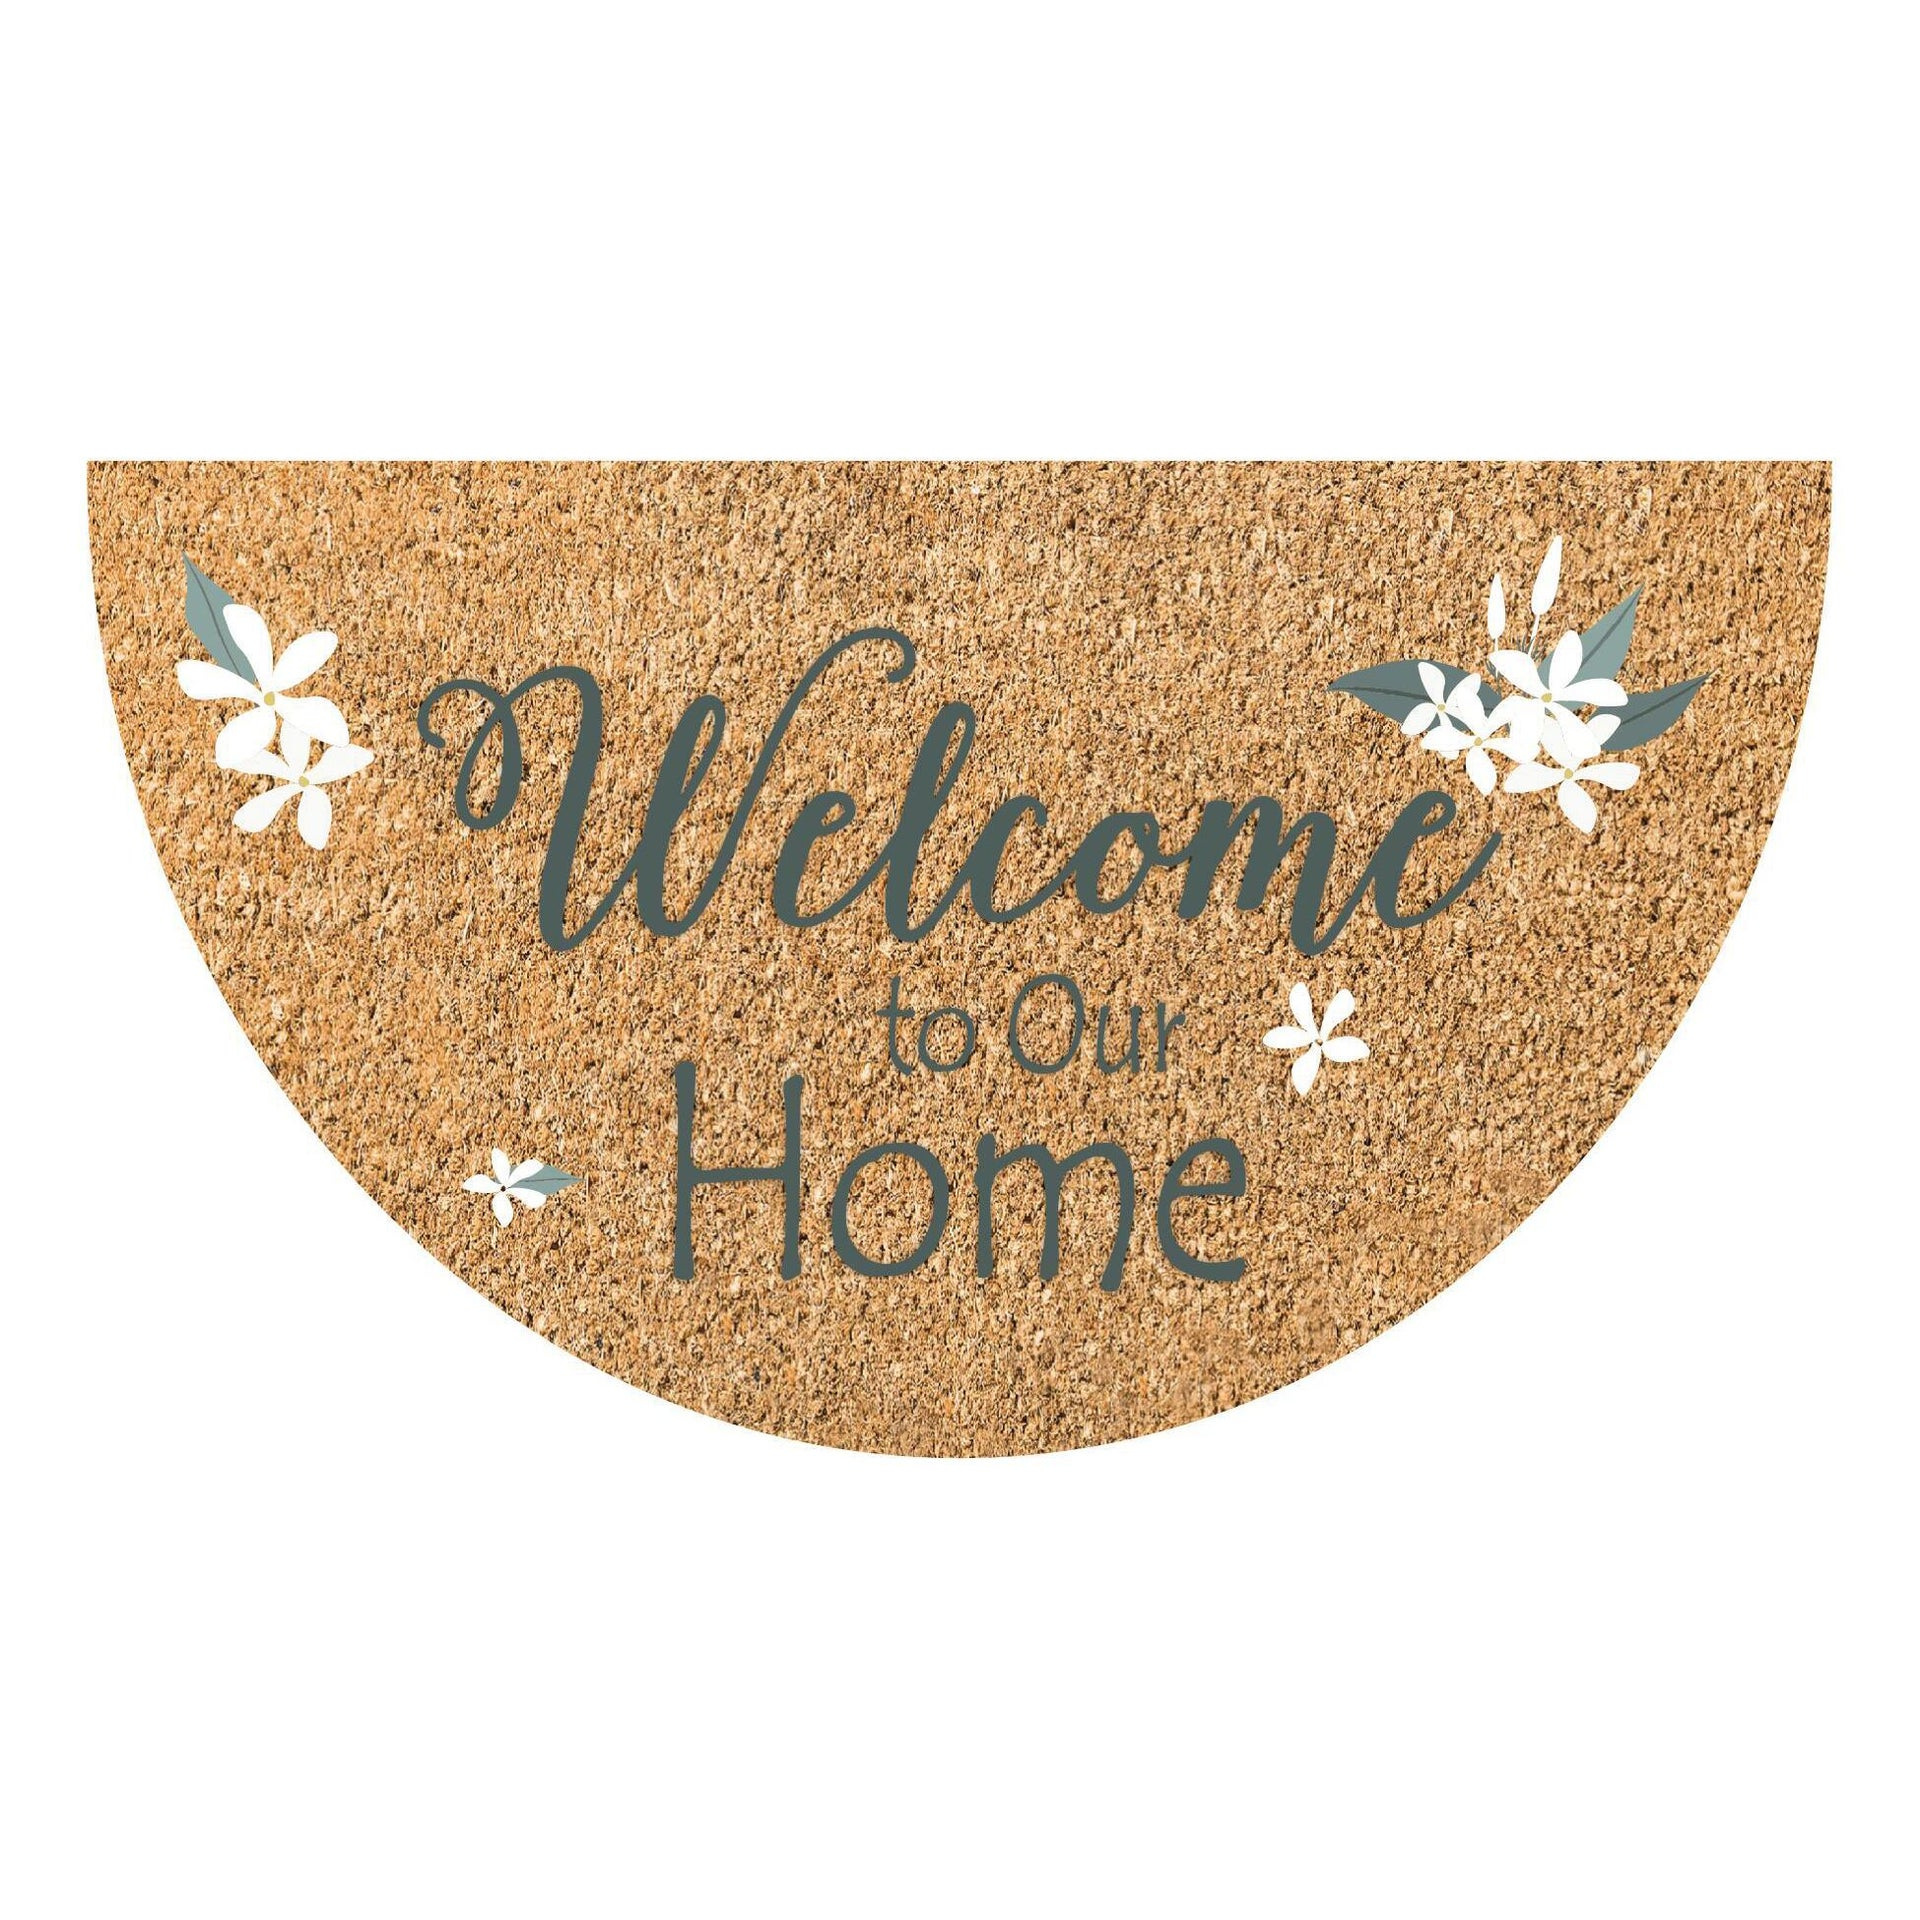 Zerbino Jolly Welcome to our home in cocco multicolore 40x70 cm